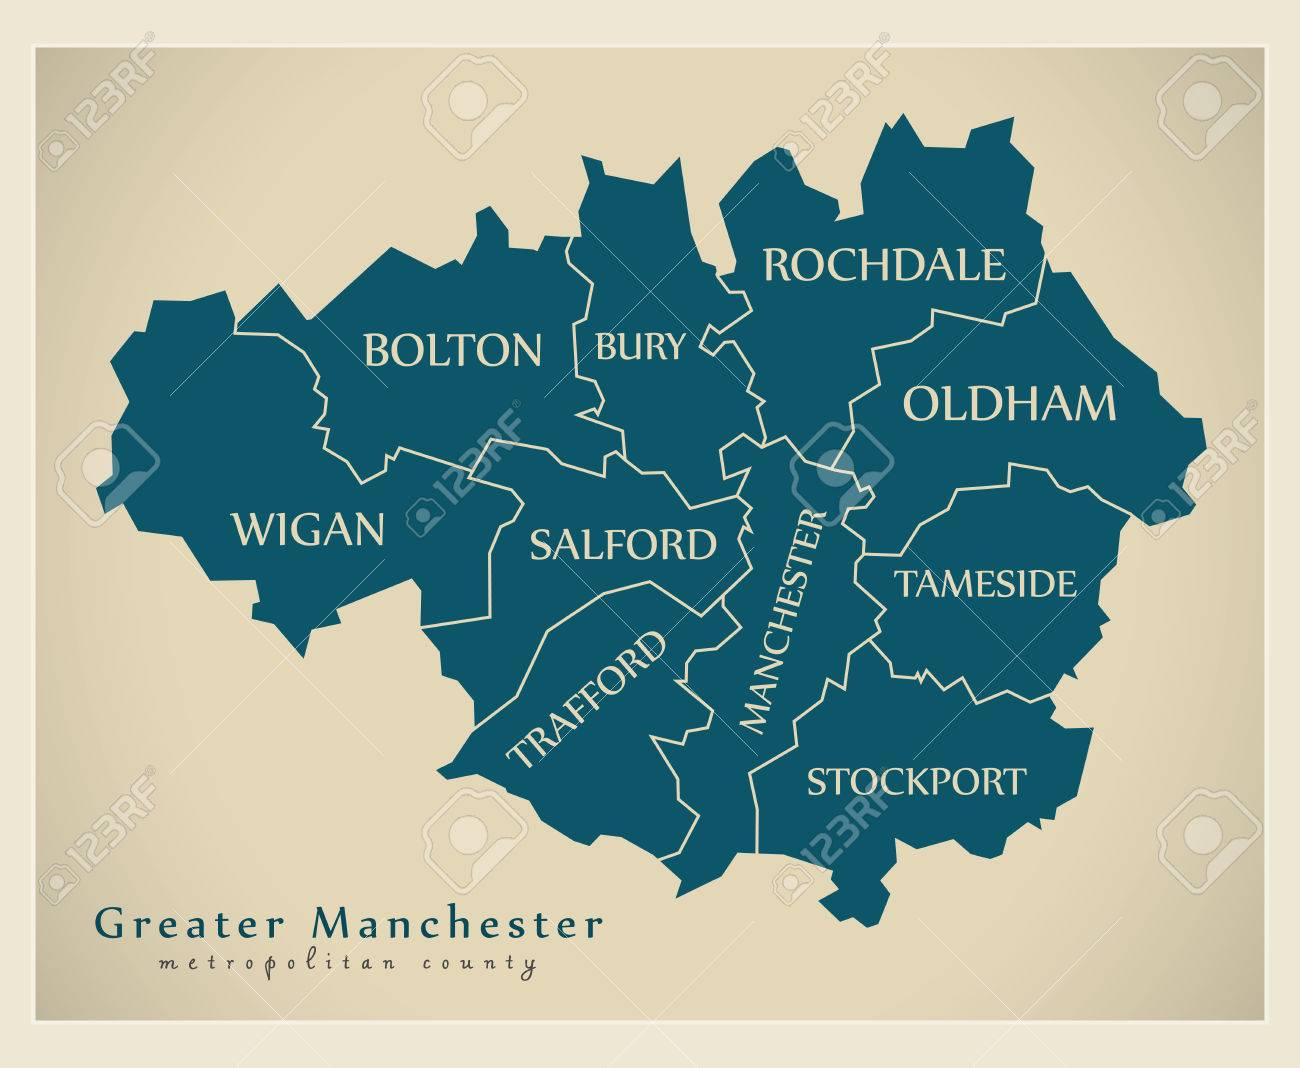 Modern Map - Greater Manchester Metropolitan County UK Royalty Free ...